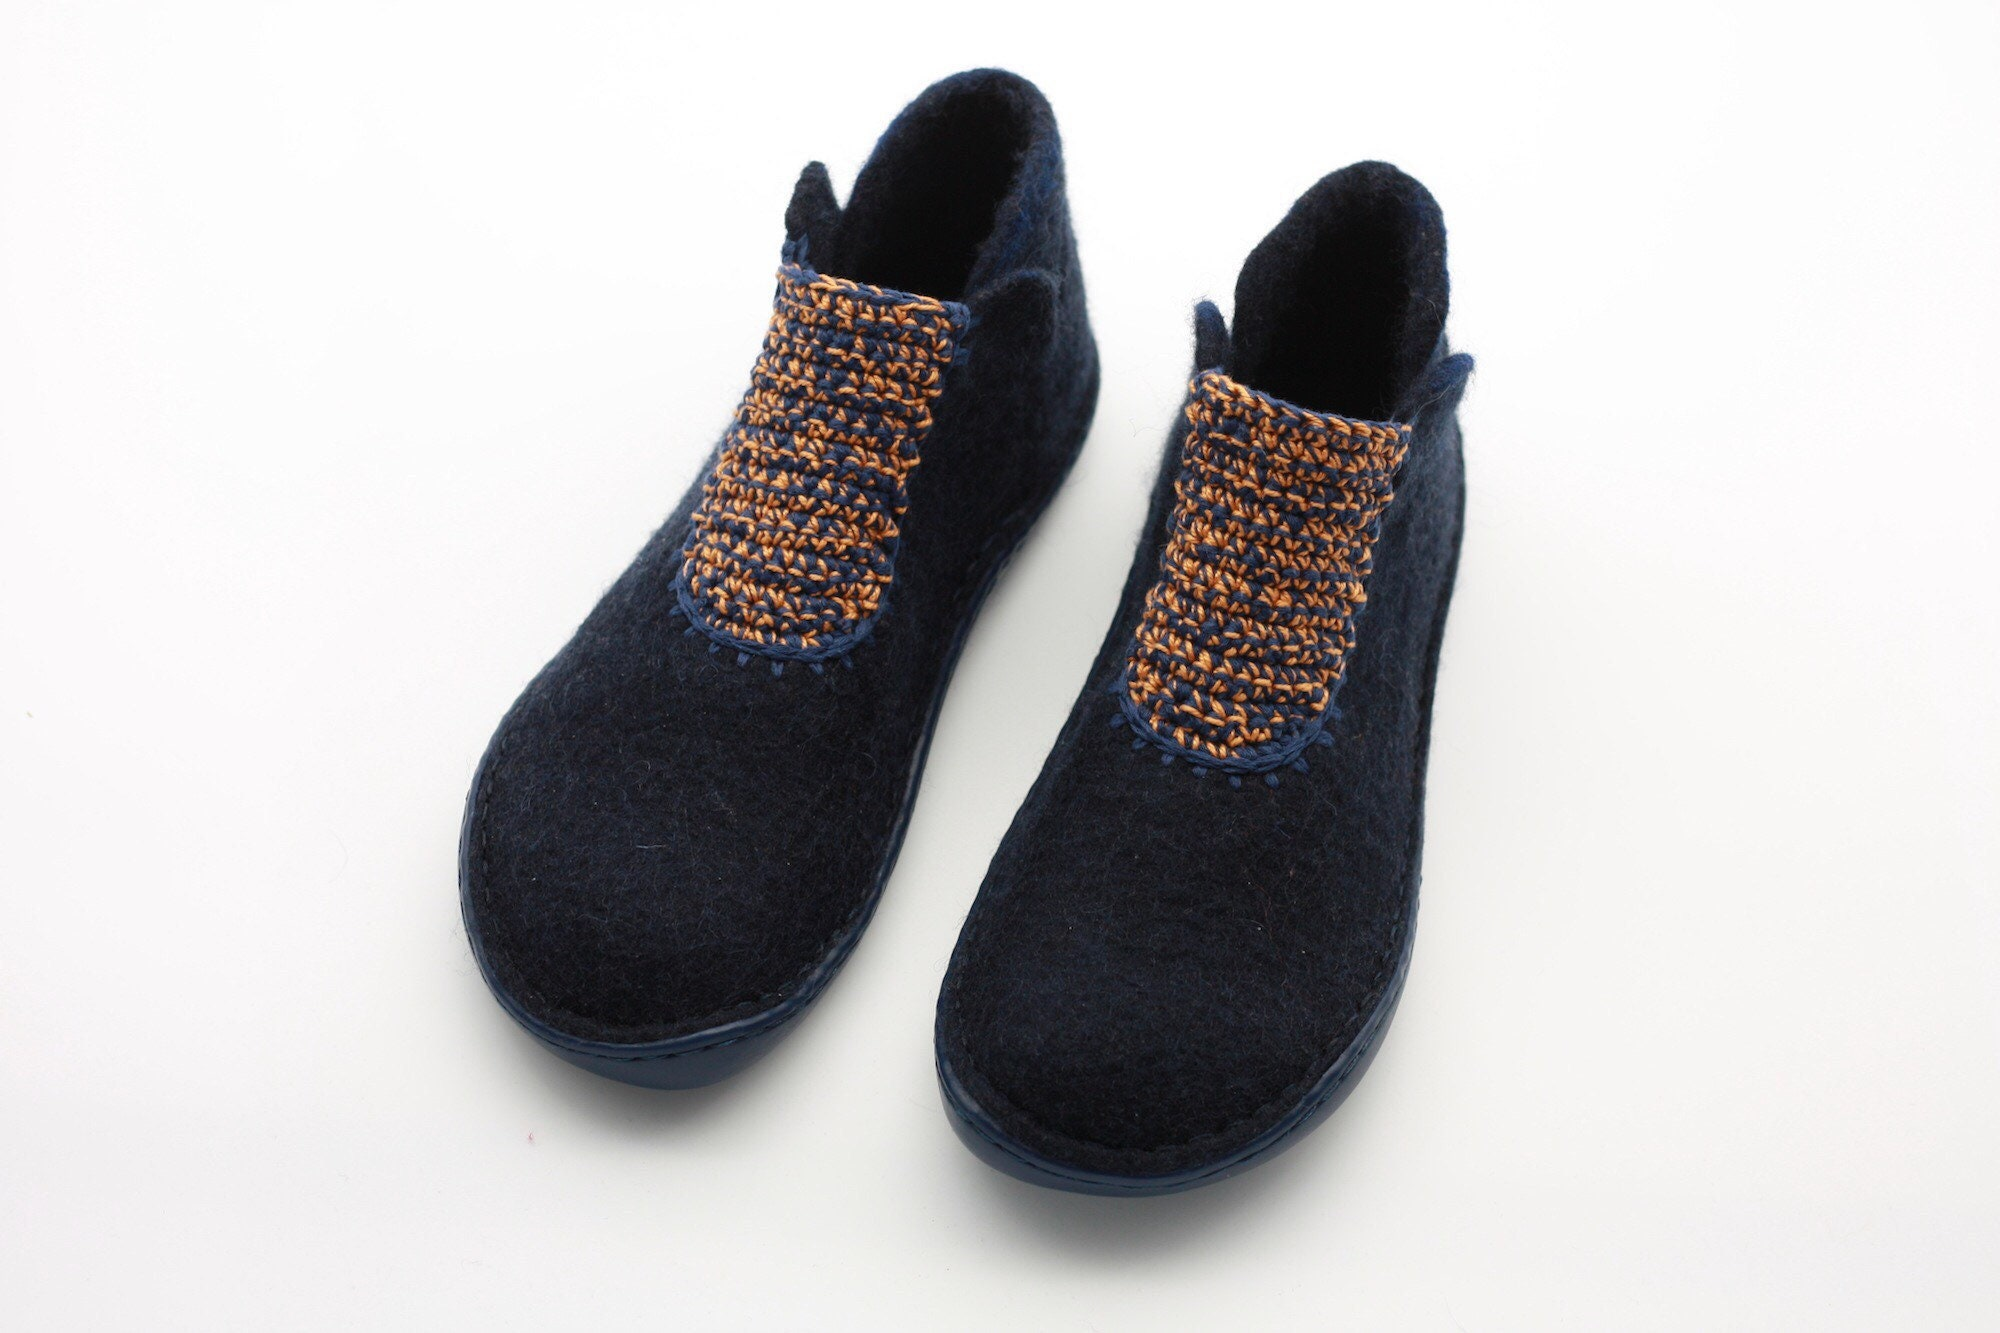 2333335f60dbe Lucielalune Princess Spring ankle boots / Handmade felted wool / hand  crochet / women shoes ASB18-3